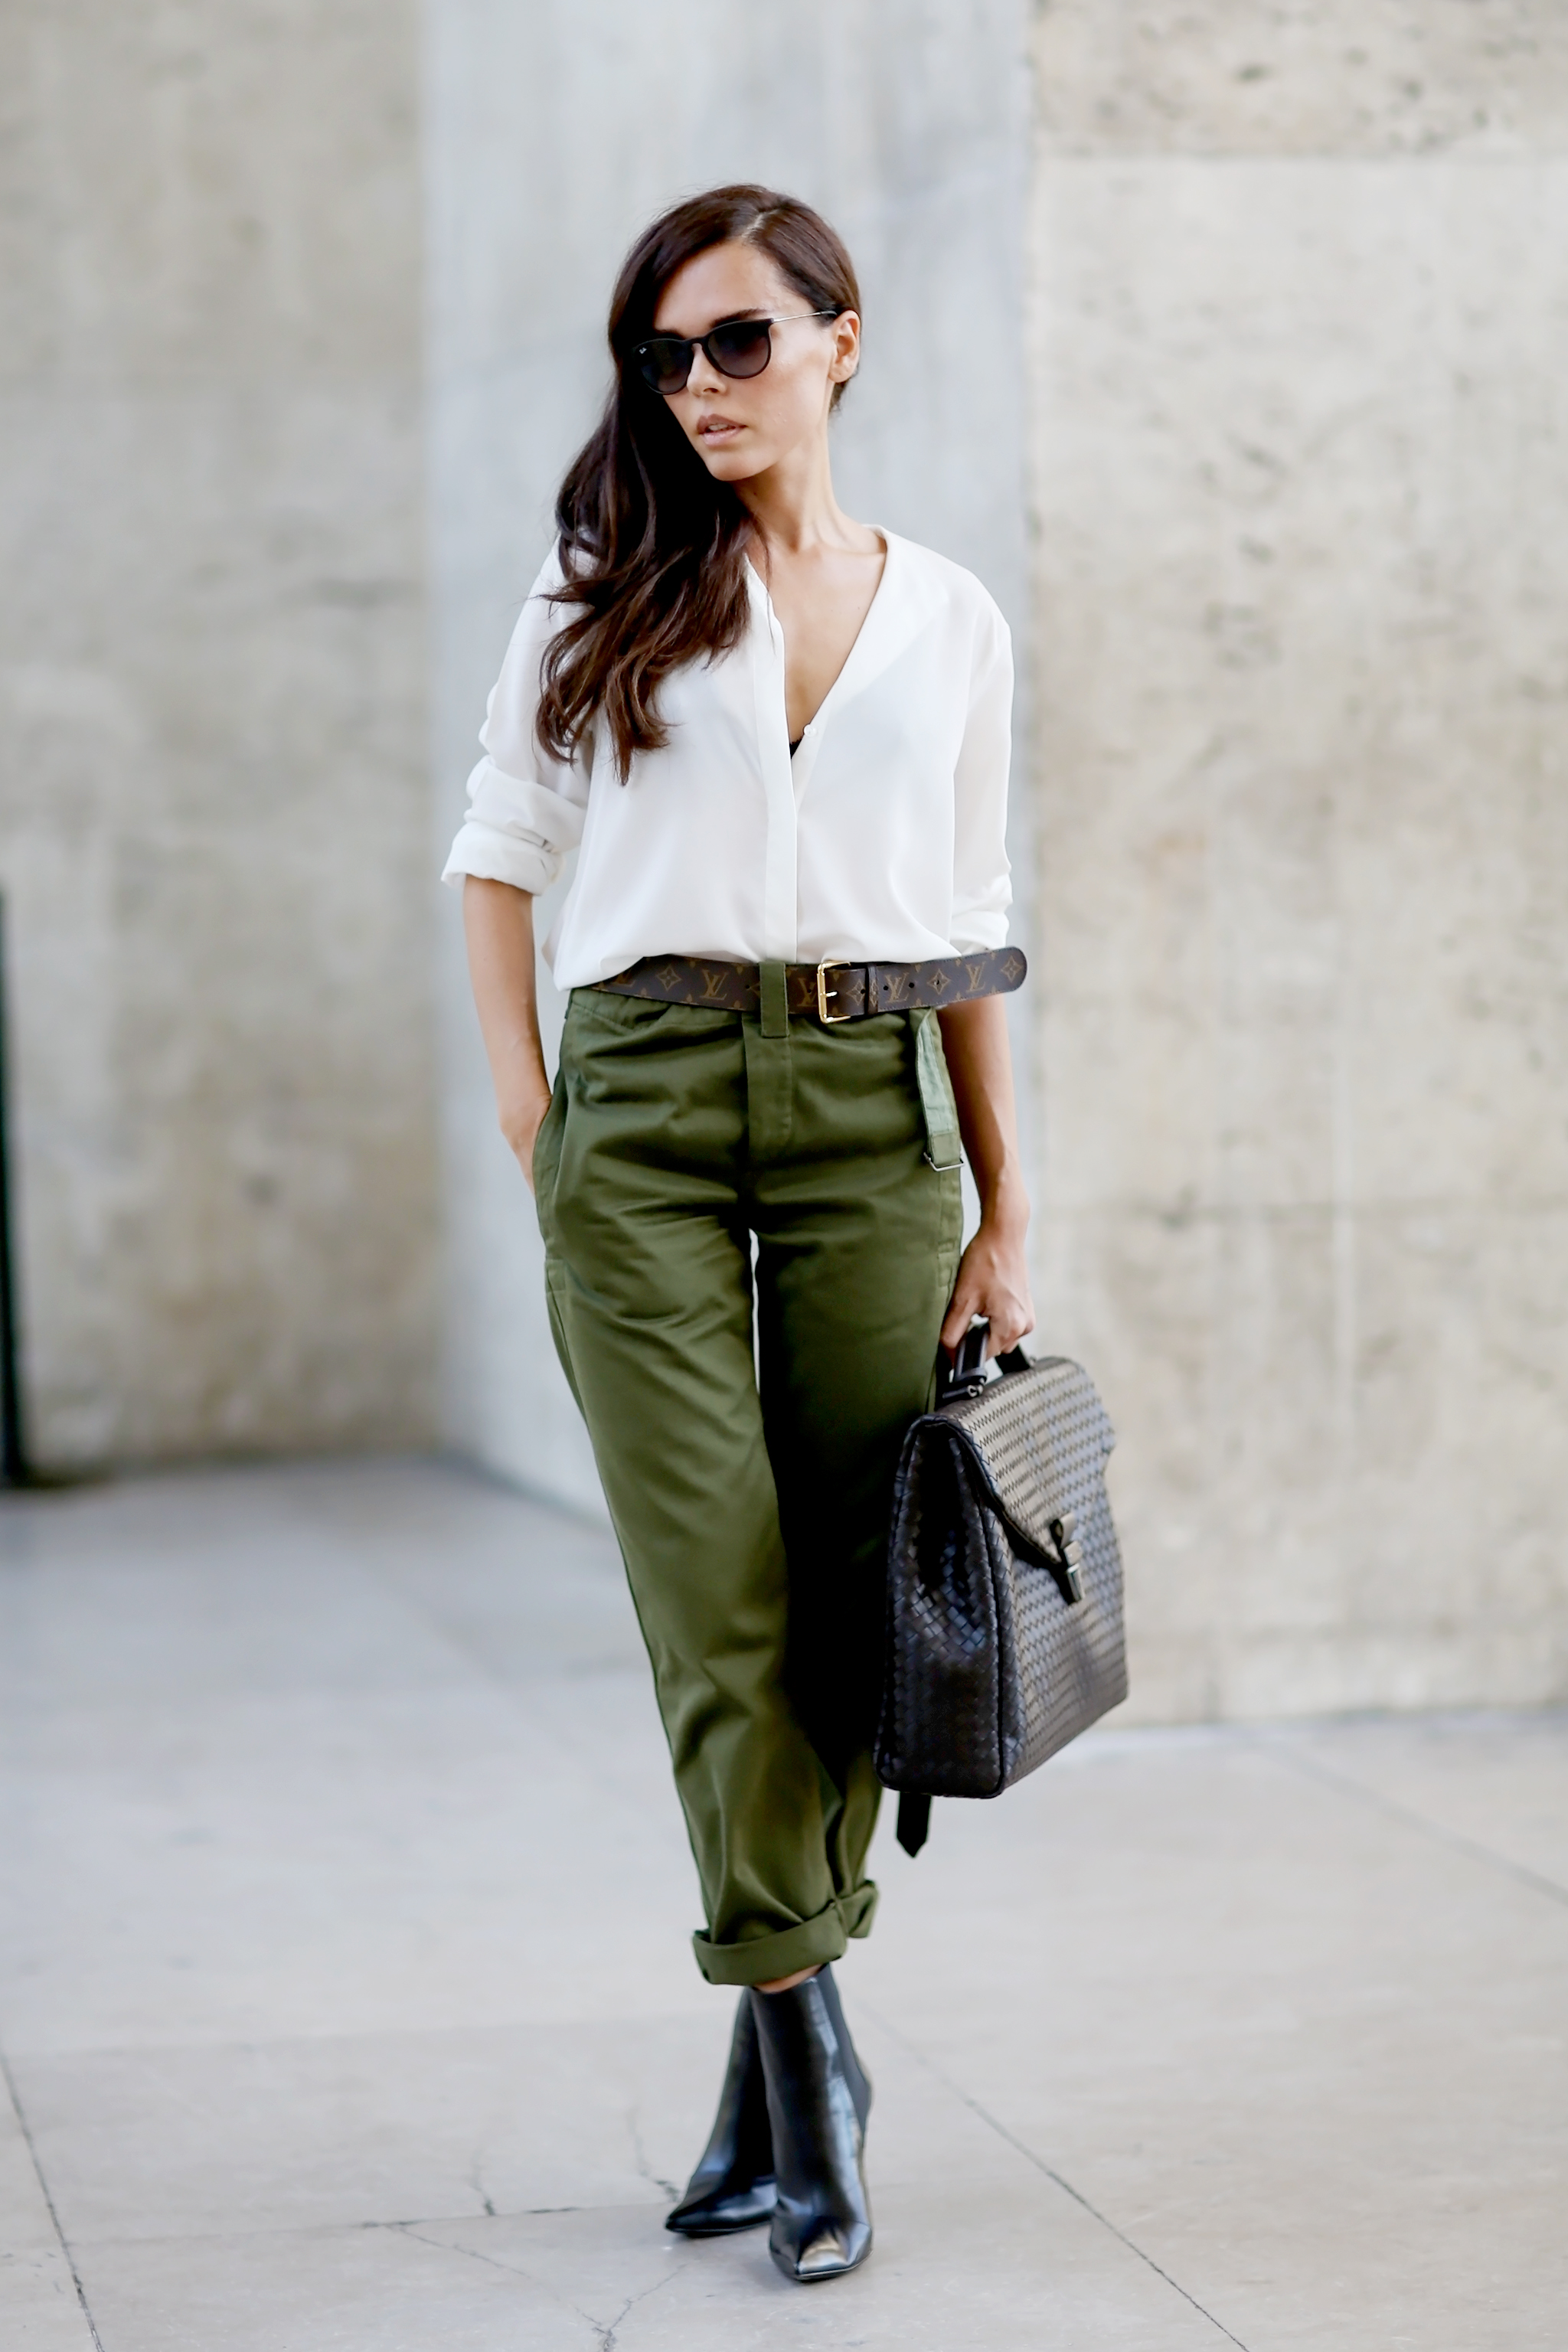 I wanted the olive green pants to be the main color and focus of the outfit so I kept the rest of the outfit neutral. The accessories and sweater are in off-white, gray, black, and taupe. These toned down colors let the main focus of the outfit be the awesome pants.